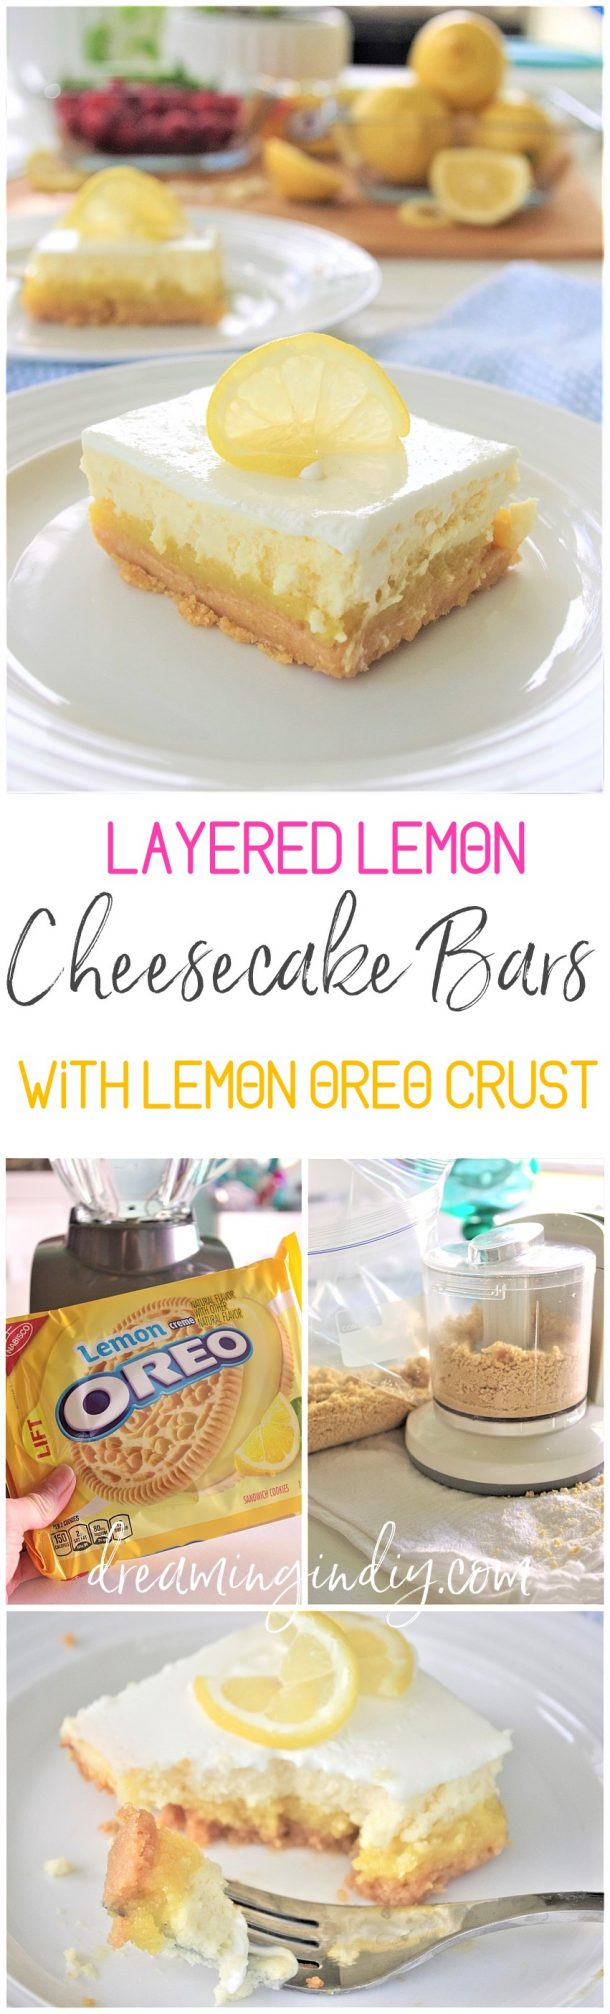 Yummy Lemon Sour Cream Cheesecake Dessert Bars with Lemon Oreo Crust - Easy Layered Treats Recipe by Dreaming in DIY